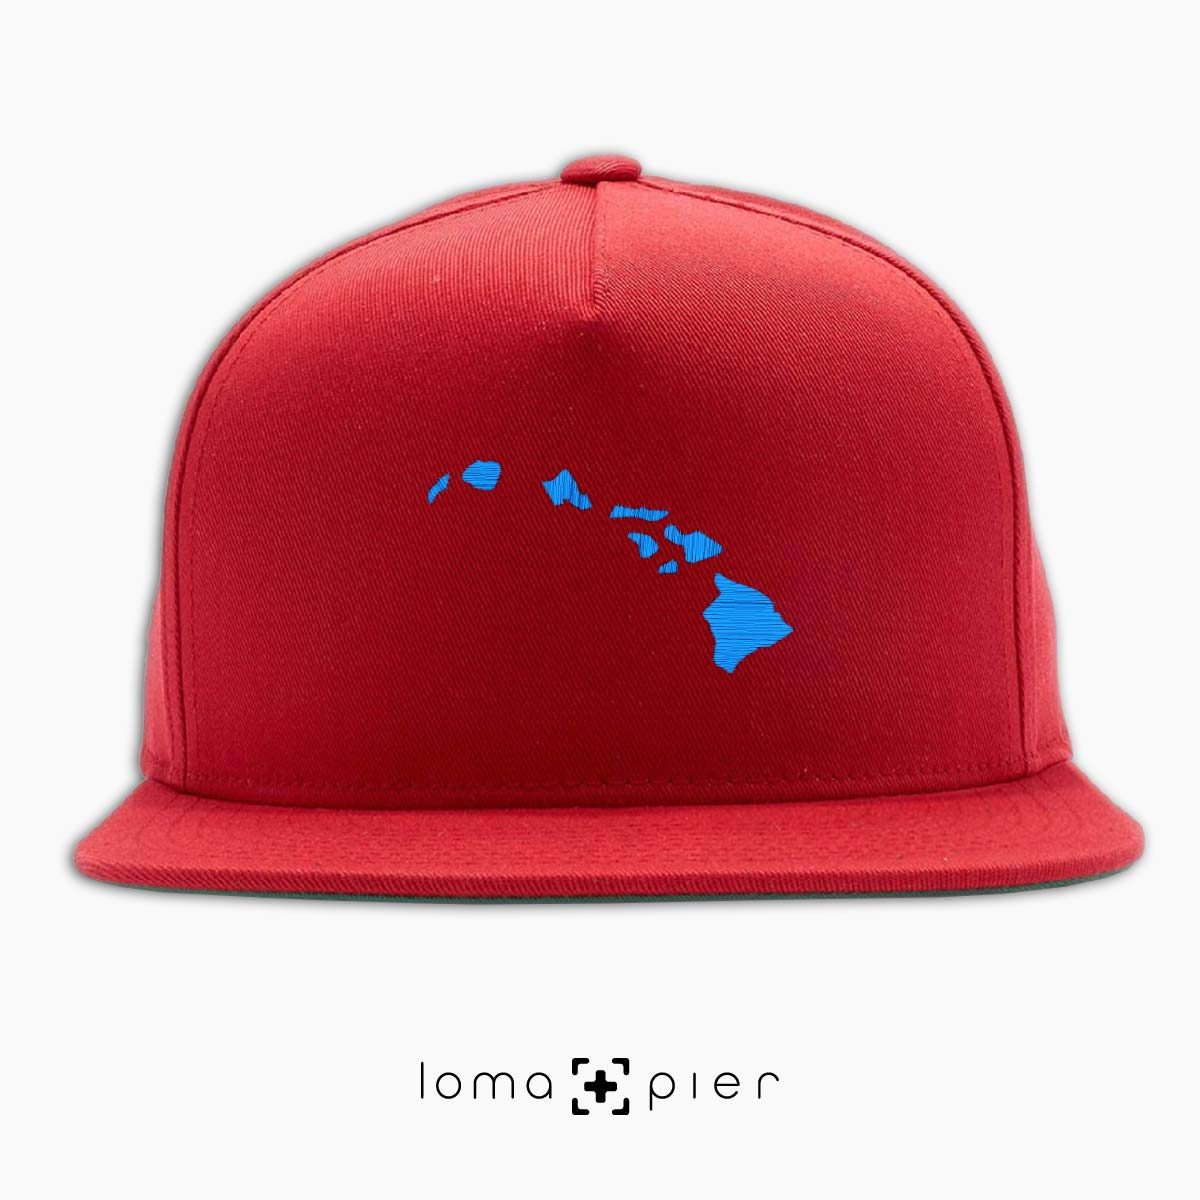 HAWAIIAN ISLANDS icon embroidered on a red classic snapback hat by loma+pier hat store